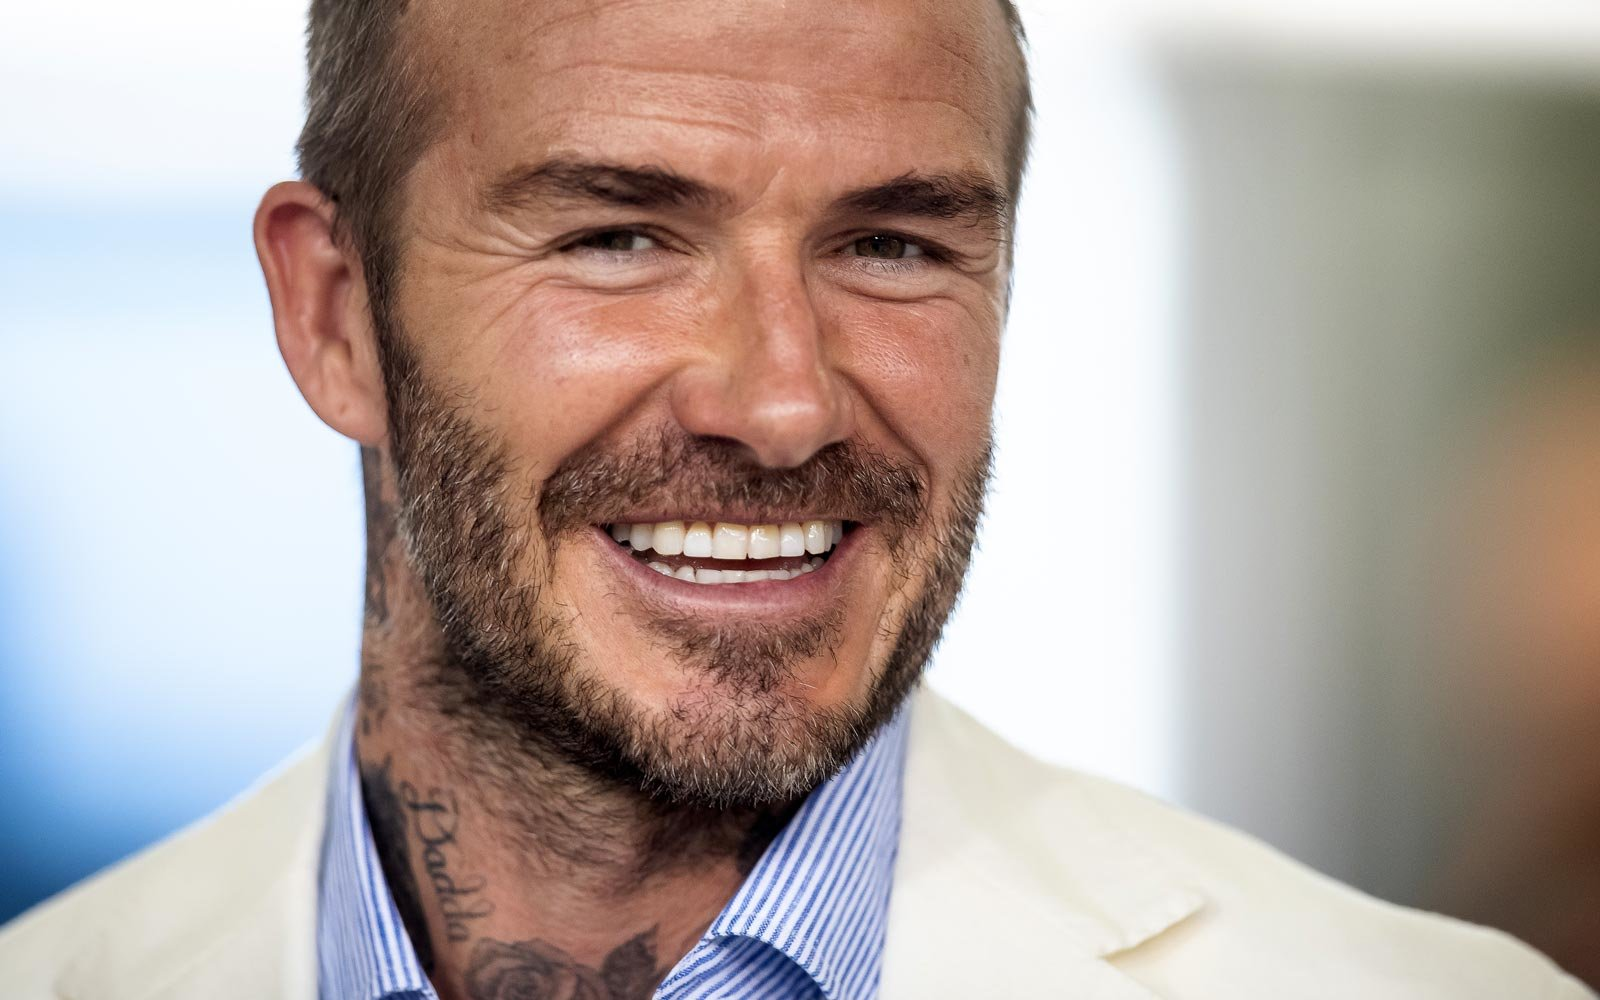 David Beckham just gave us a sneak peek at his first hotel — here's what to expect